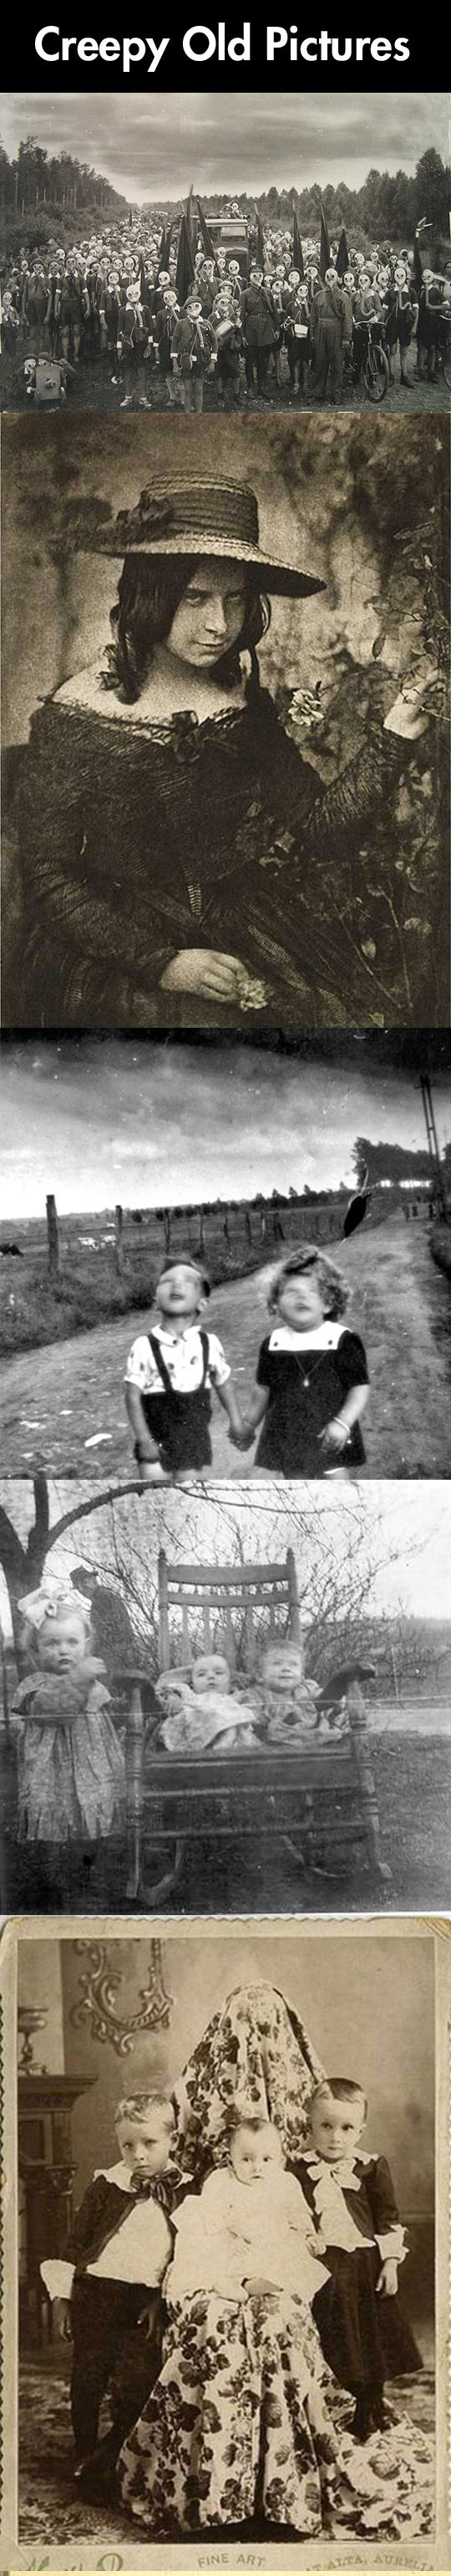 funny-creepy-old-pictures-black-white